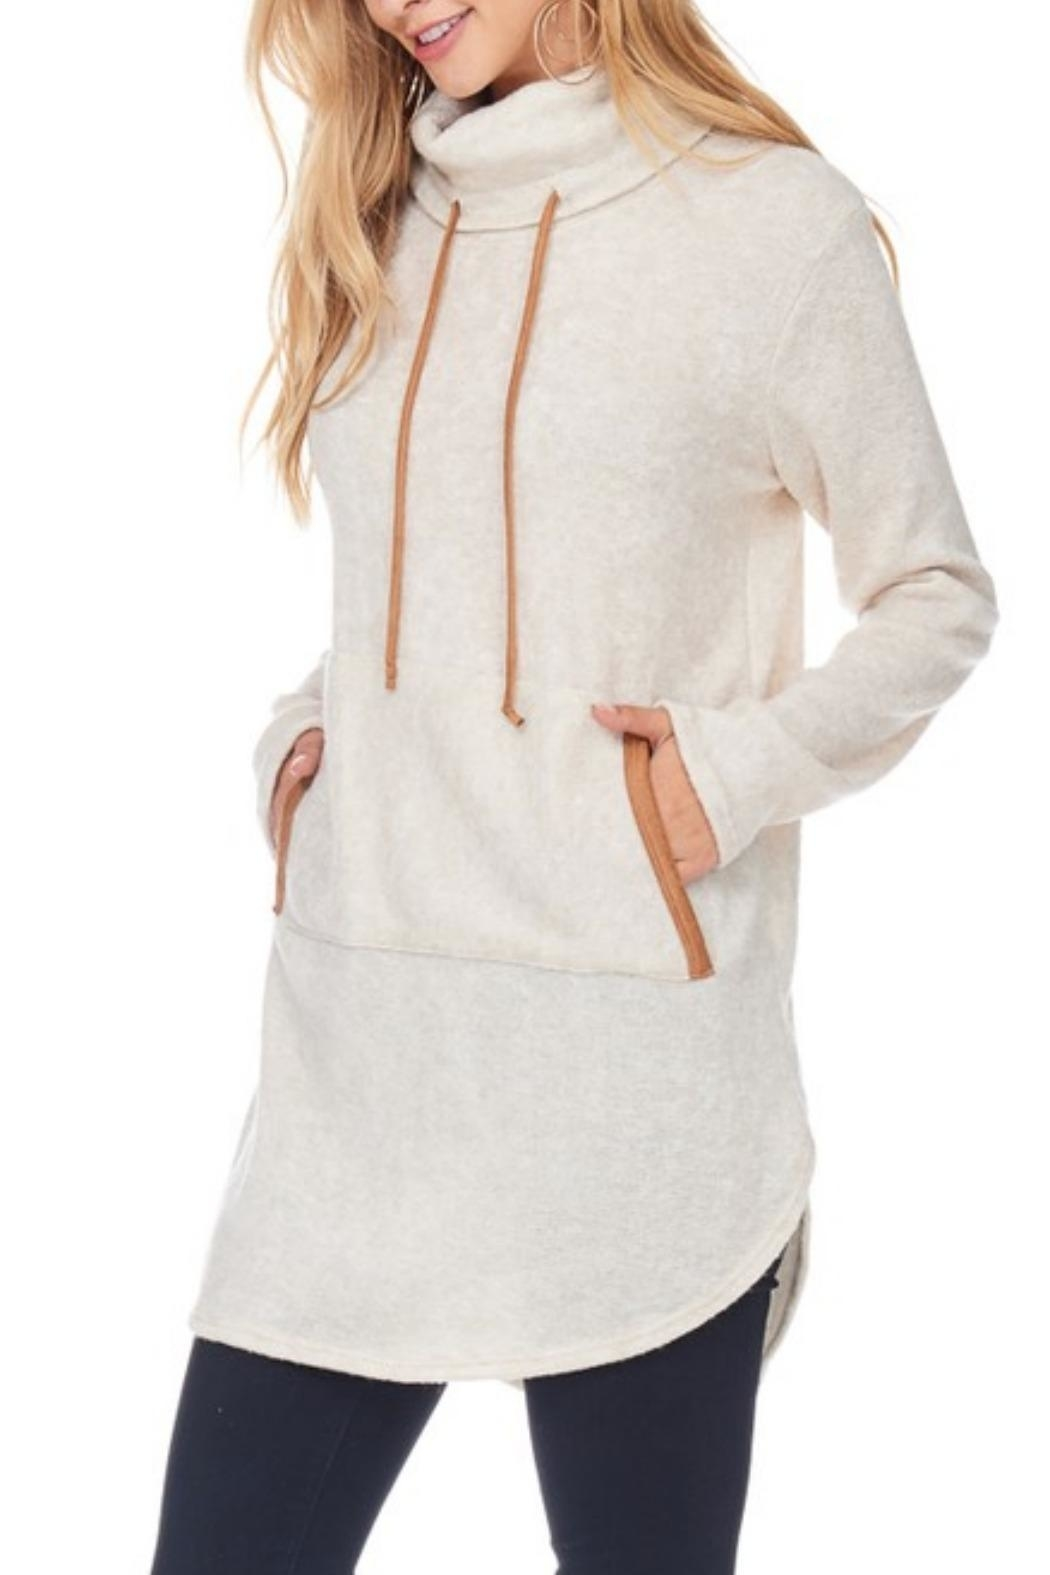 Hailey & Co Highneck Sweater Tunic - Front Cropped Image